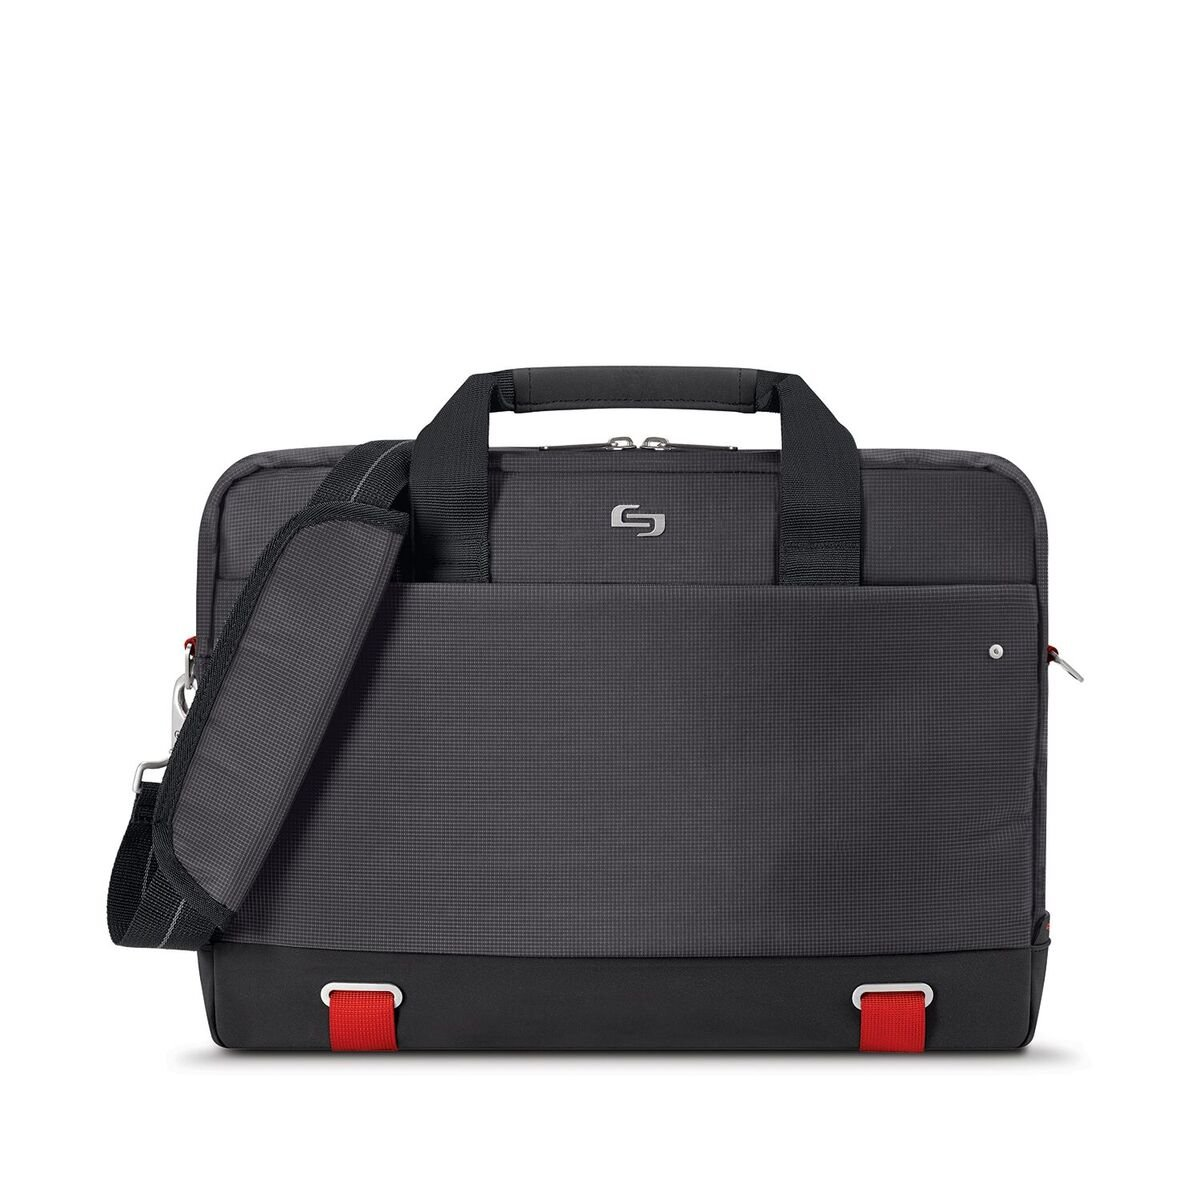 Solo Pro Aegis Laptop Briefcase Rfid Pocket 15.6'', Black